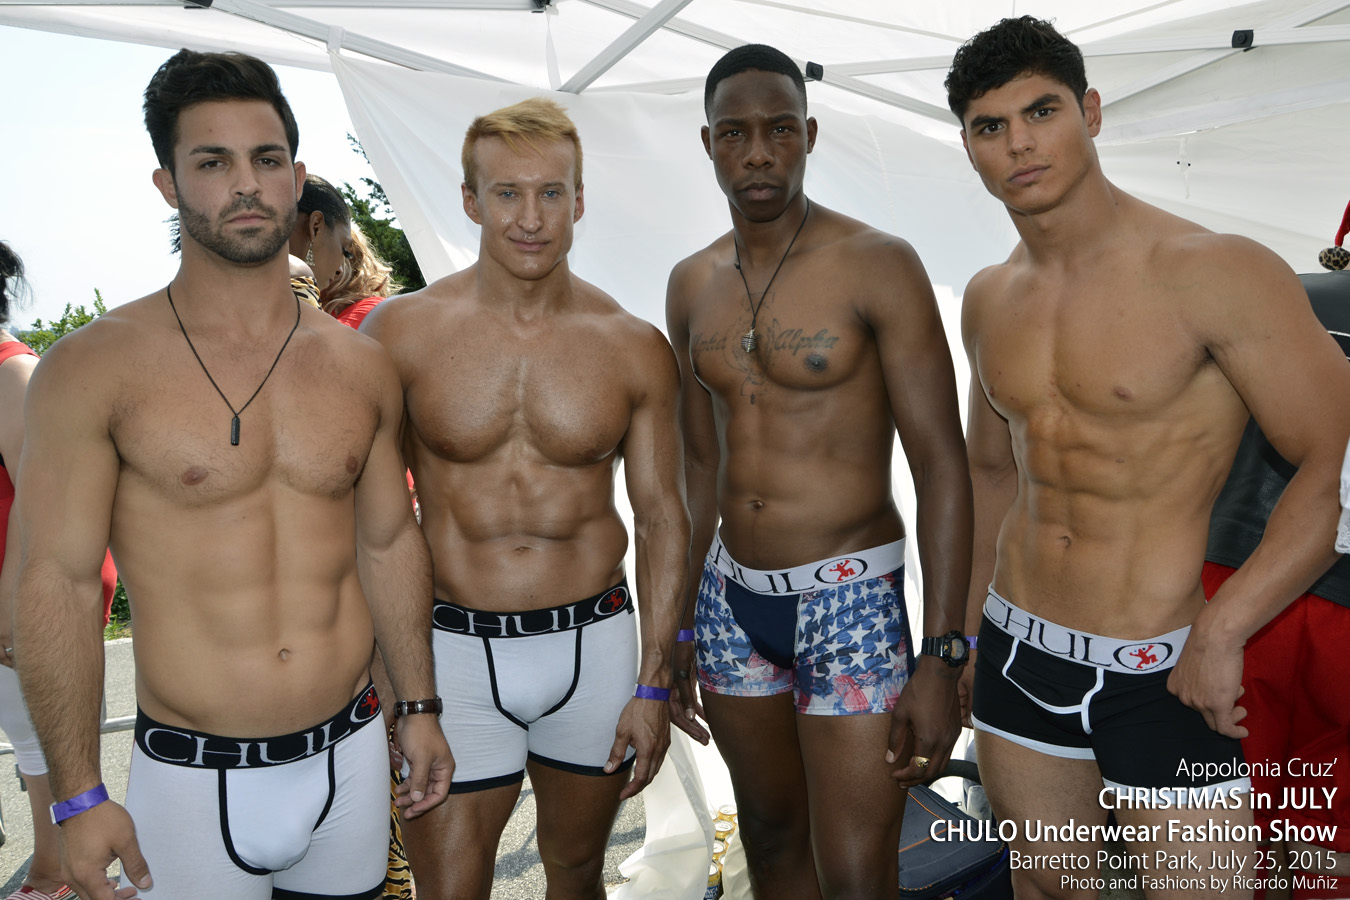 CHULO Underwear Fashion Show at ACruz Christmas in July by RMuniz 001